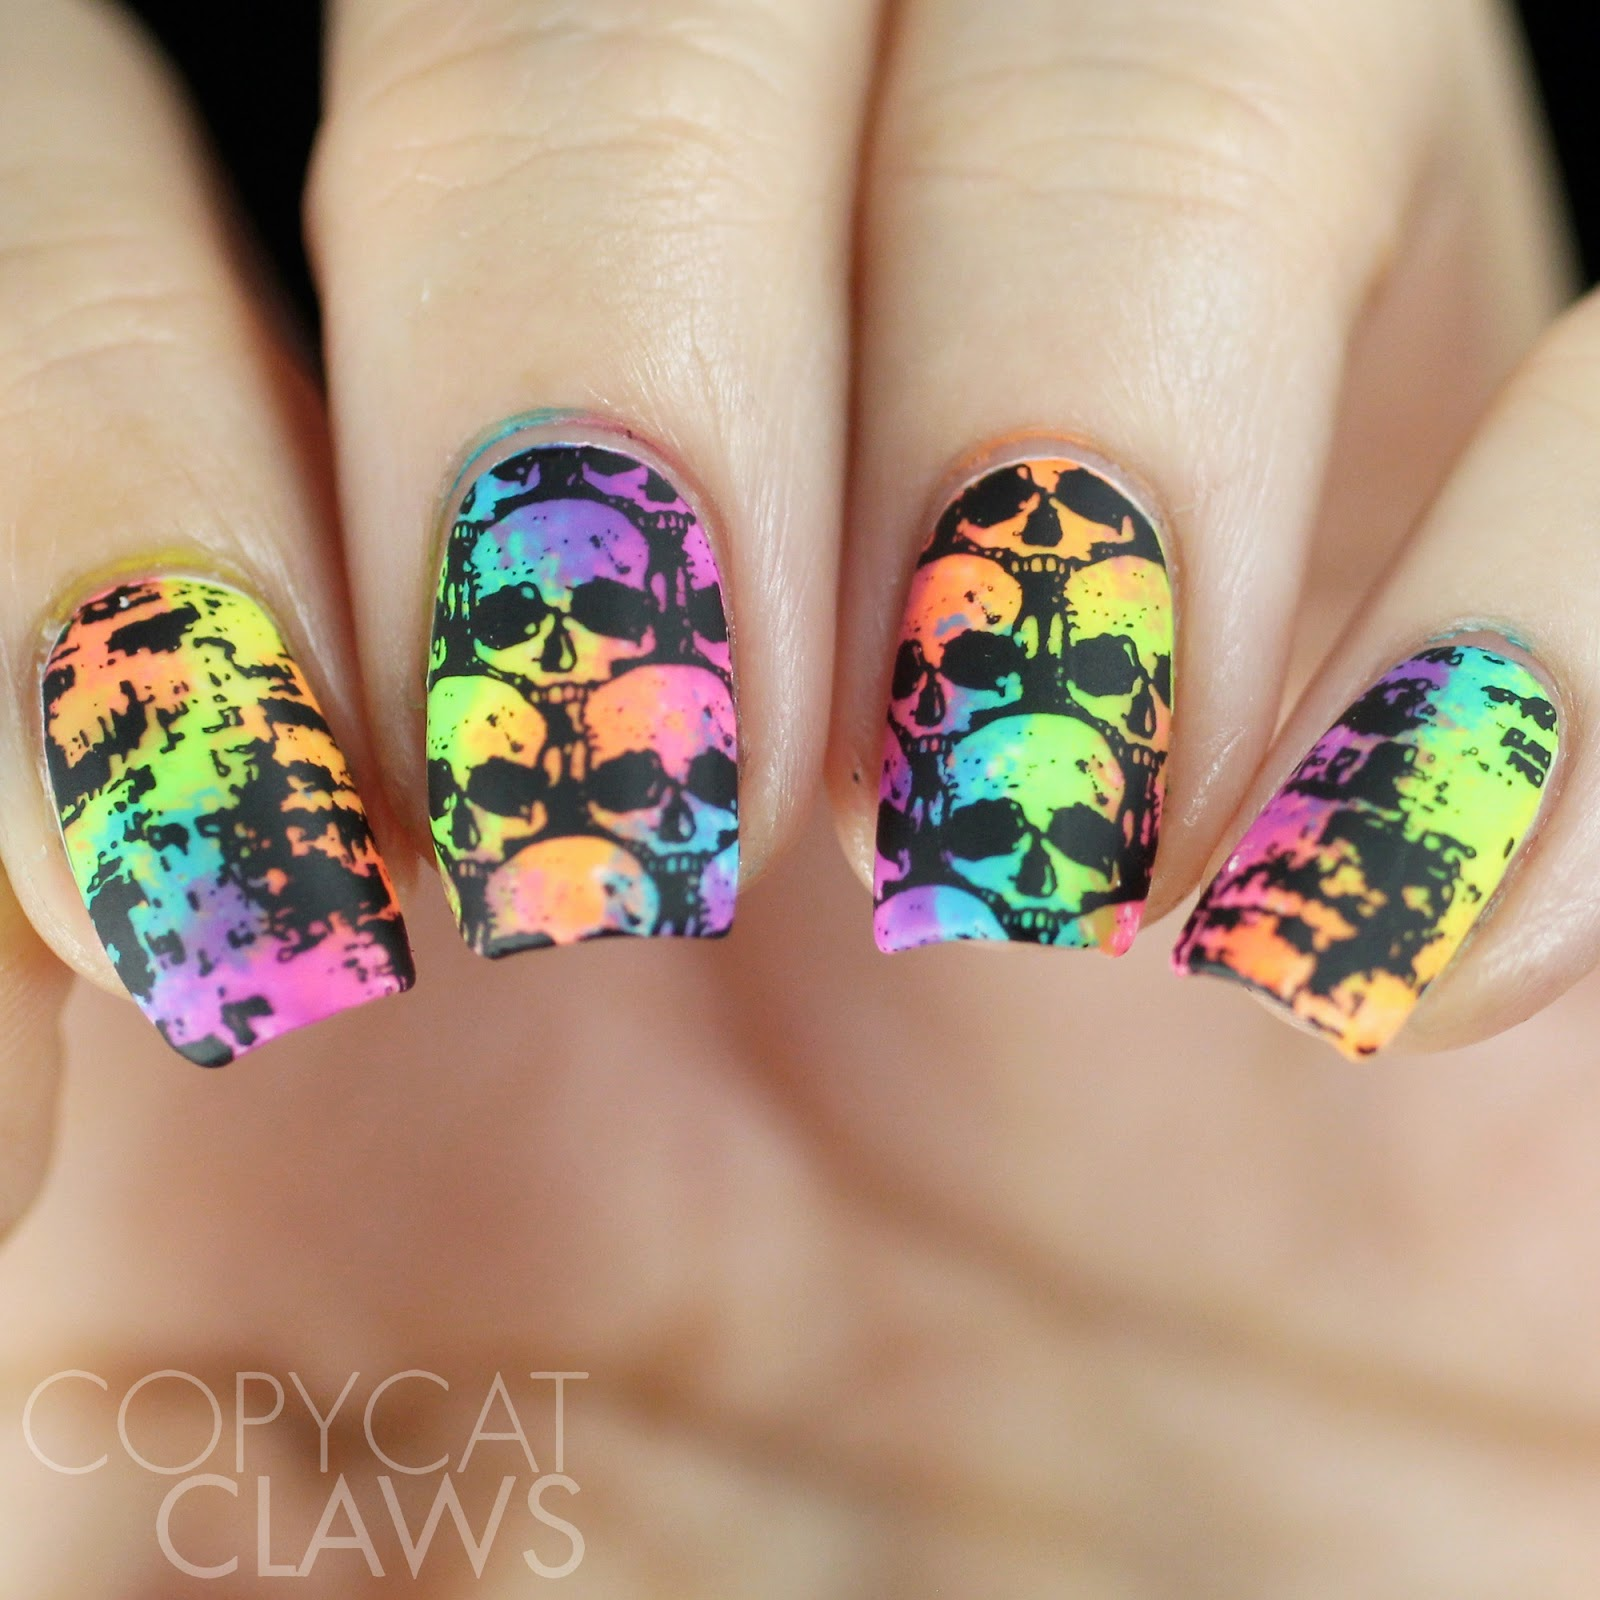 Copycat Claws 26 Great Nail Art Ideas Black And Neon